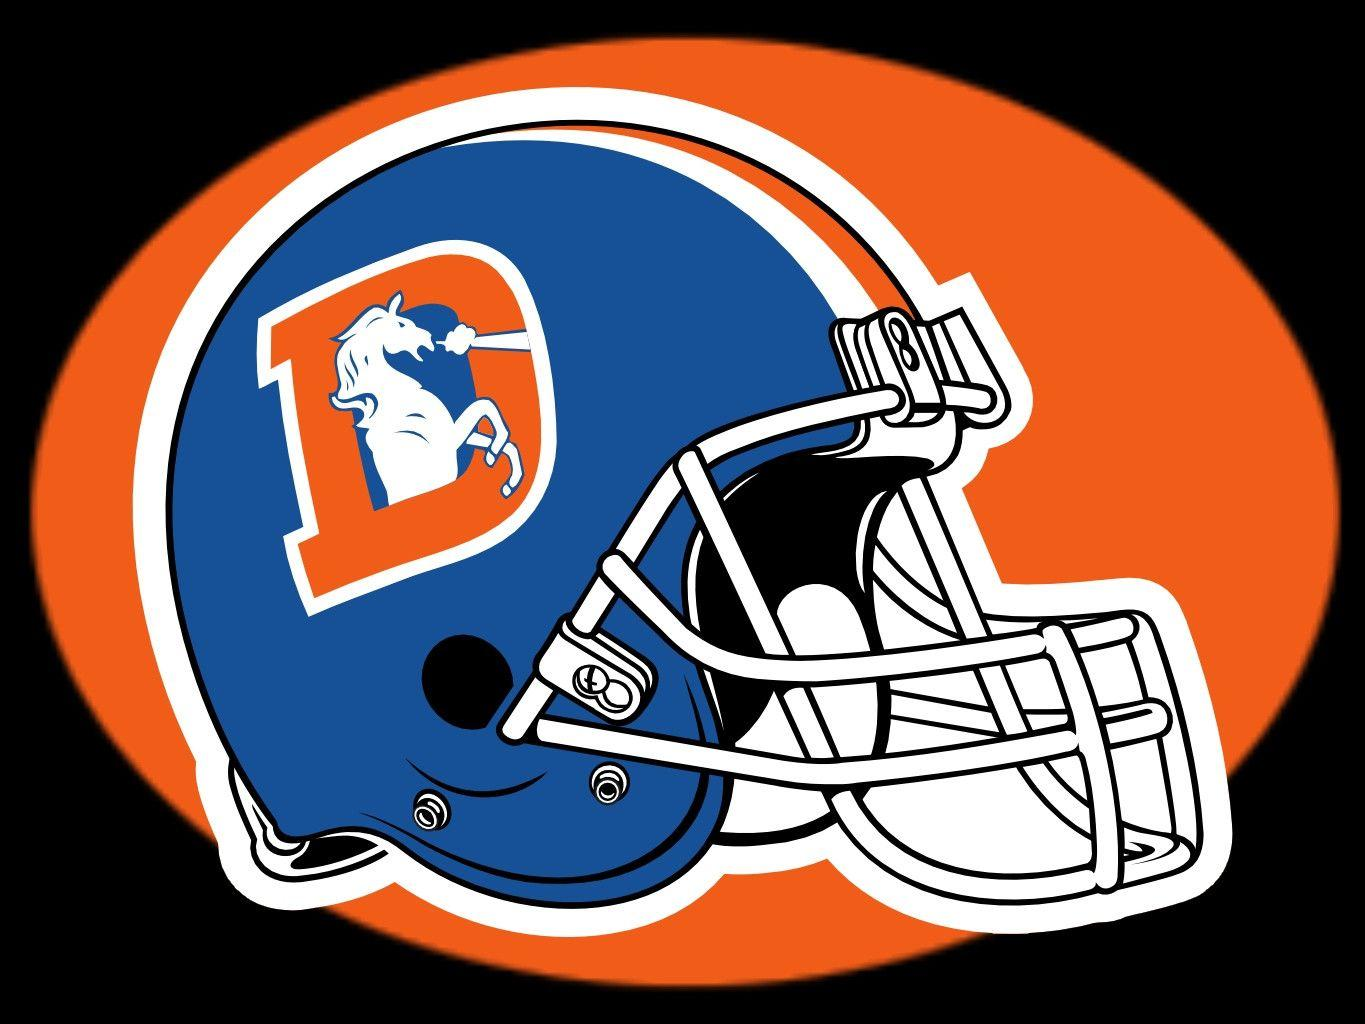 Denver Broncos Team Helmet Wallpapers